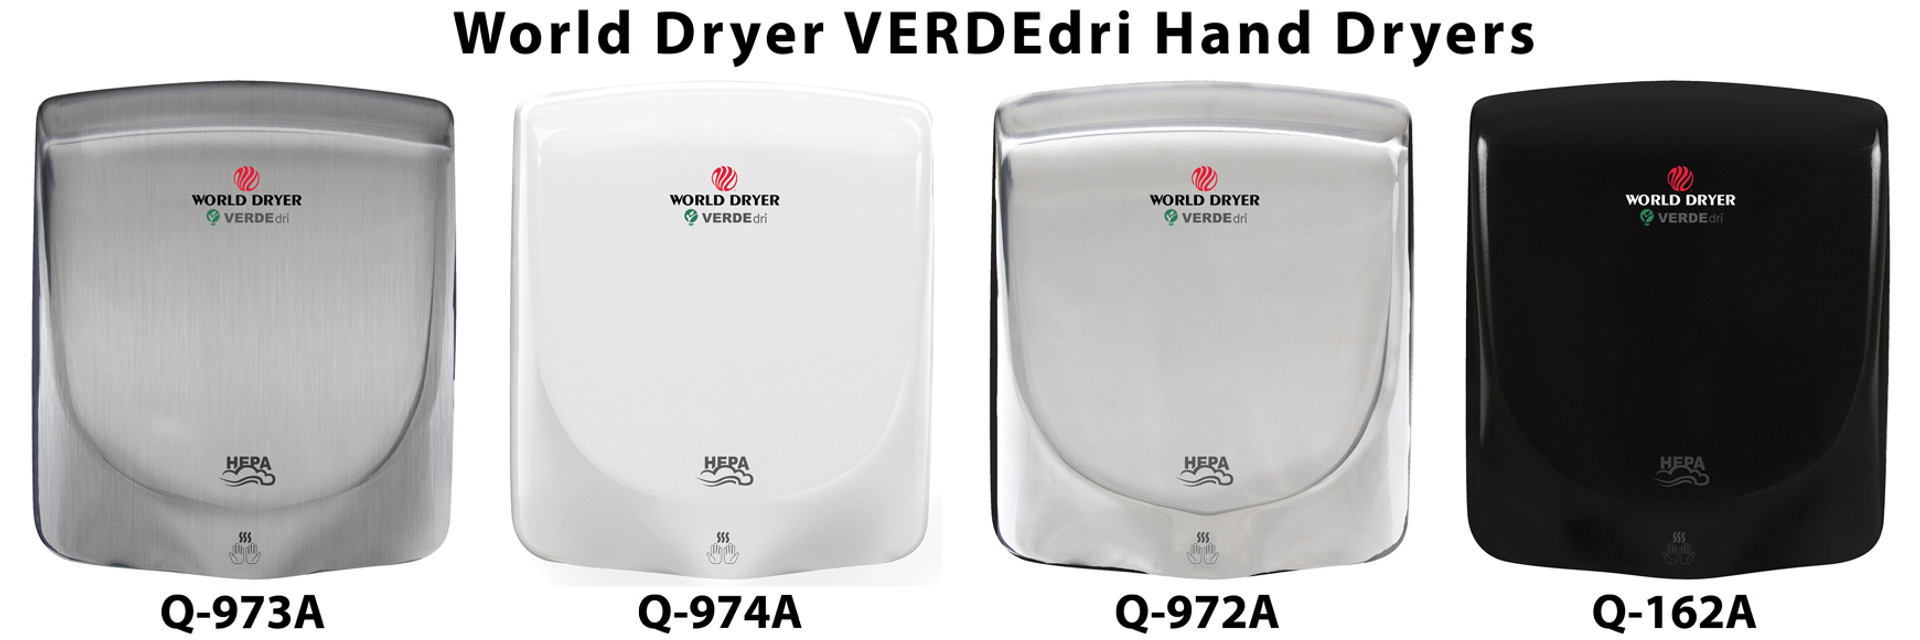 World Dryer Verdedri Hand Dryers